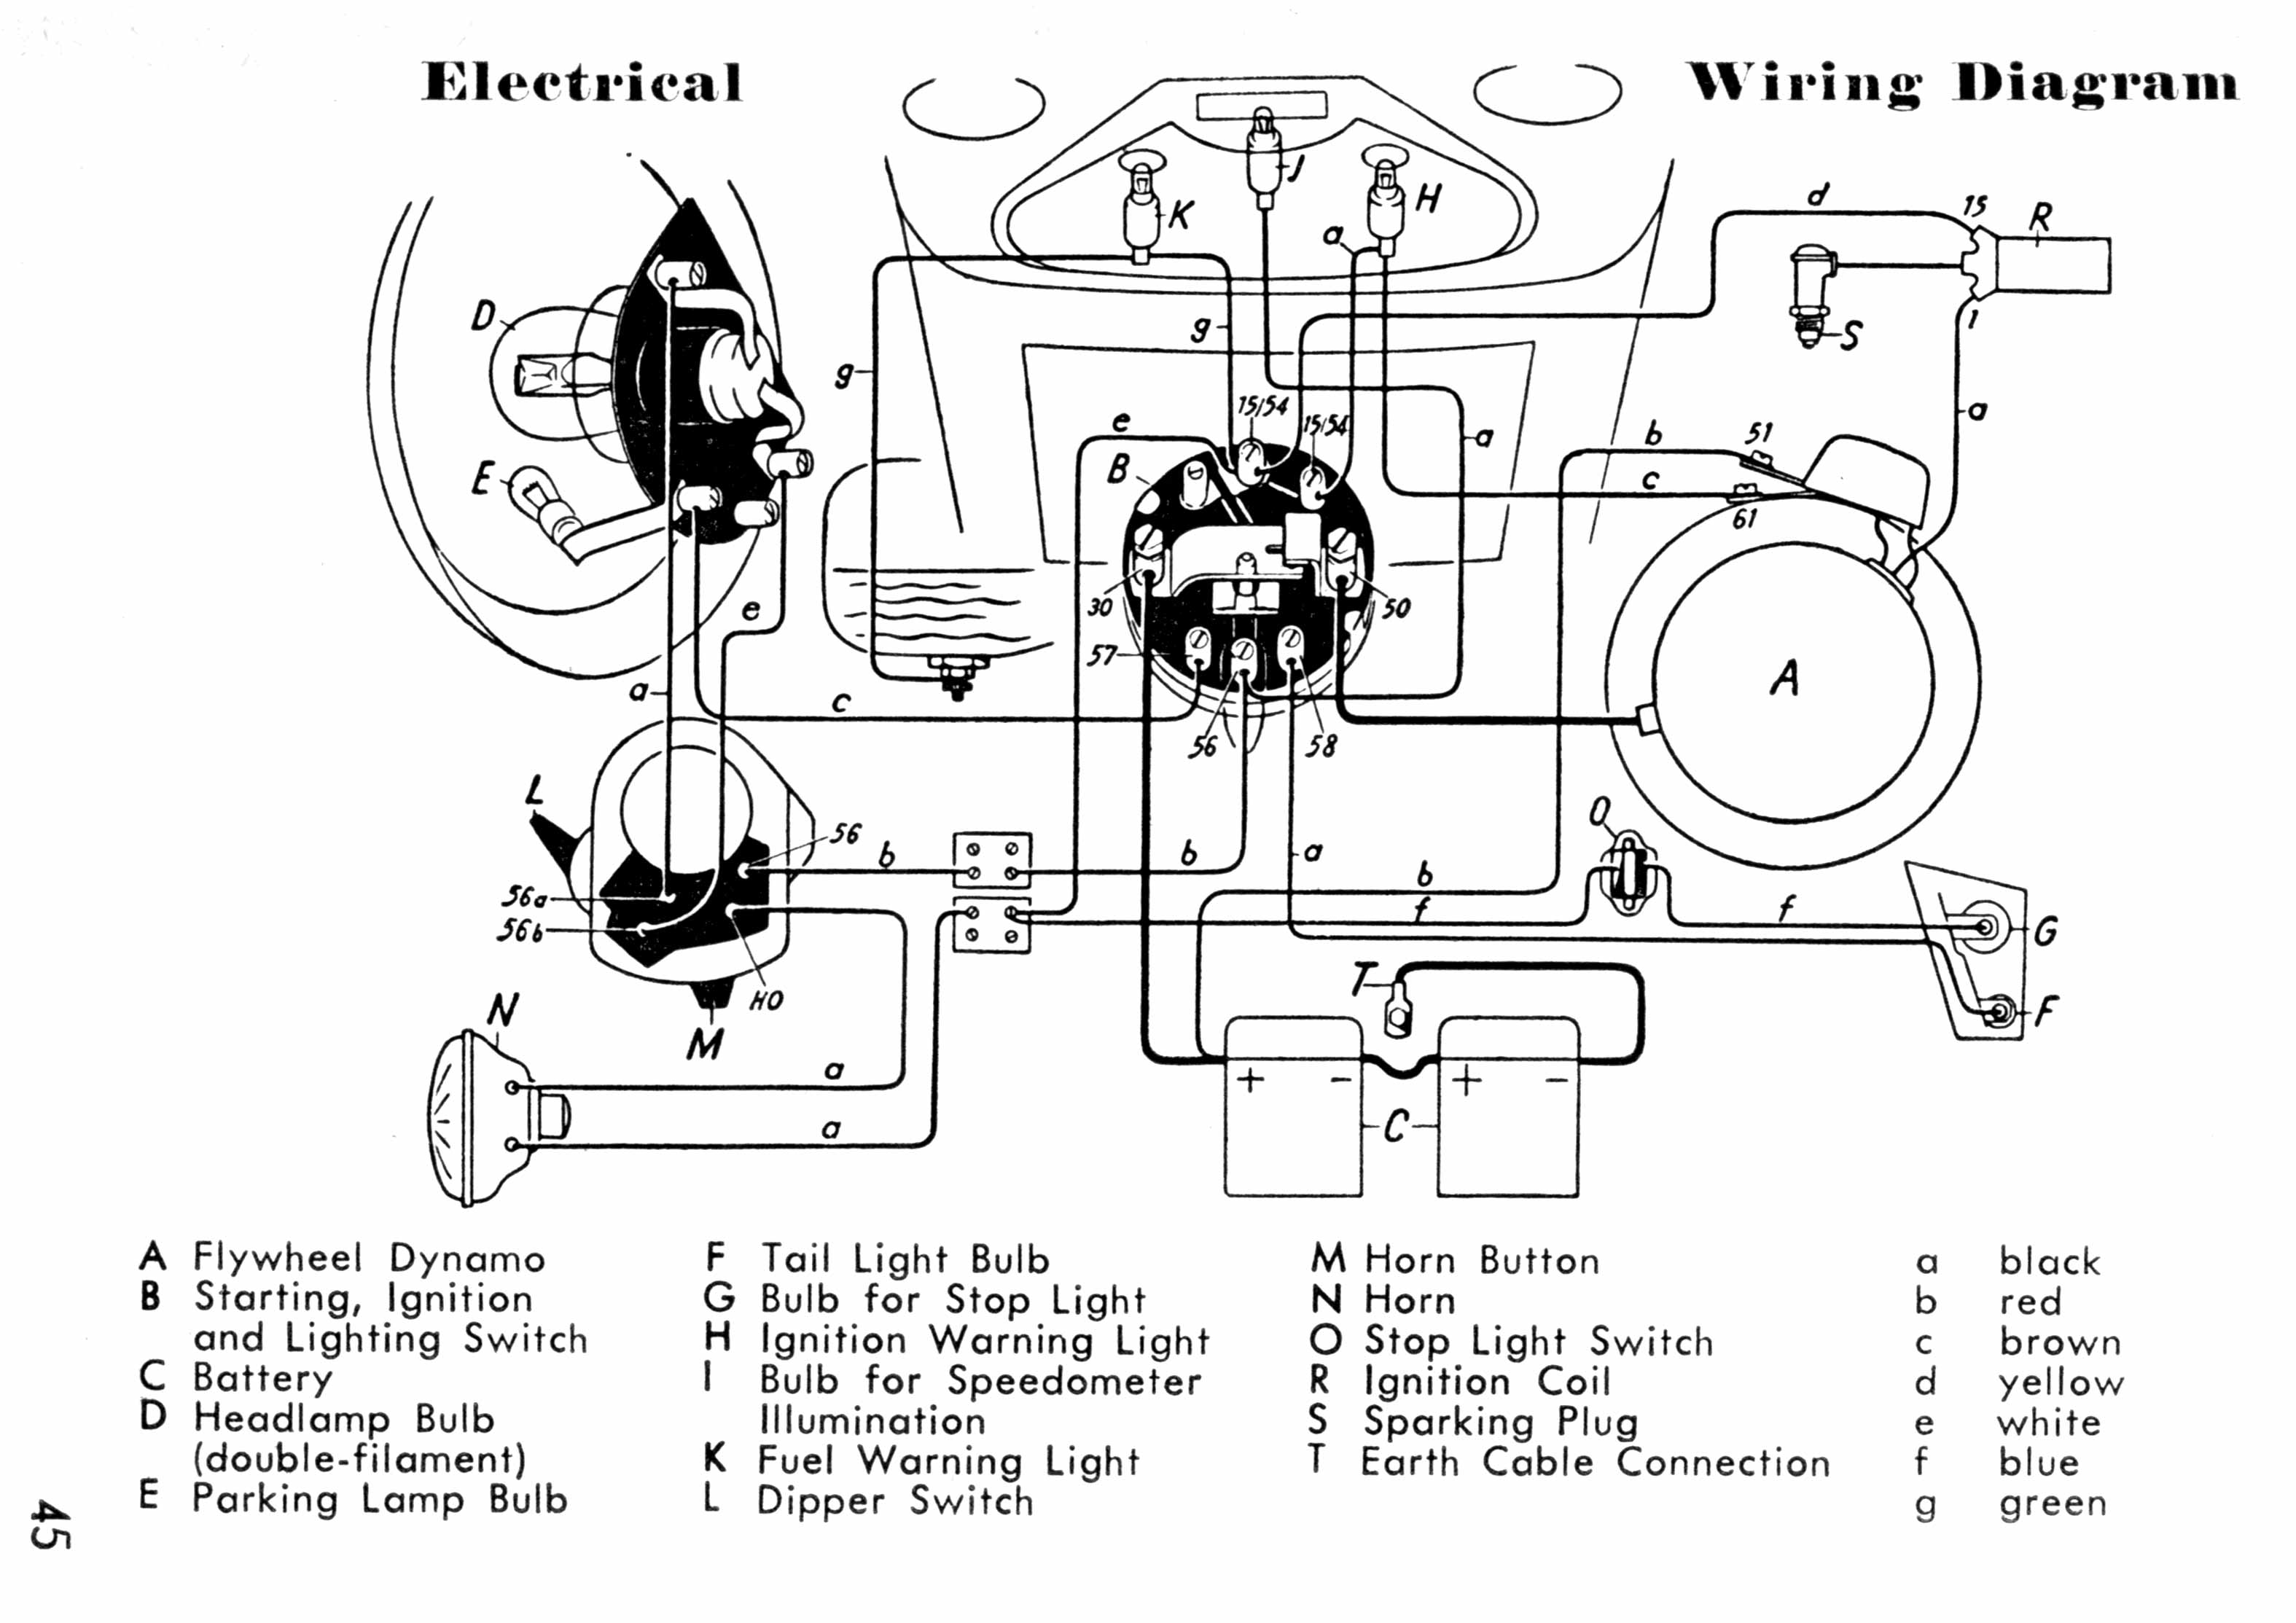 electric scooter wiring diagram electric scooter kollmorgan motor wiring guide and parts compatibility